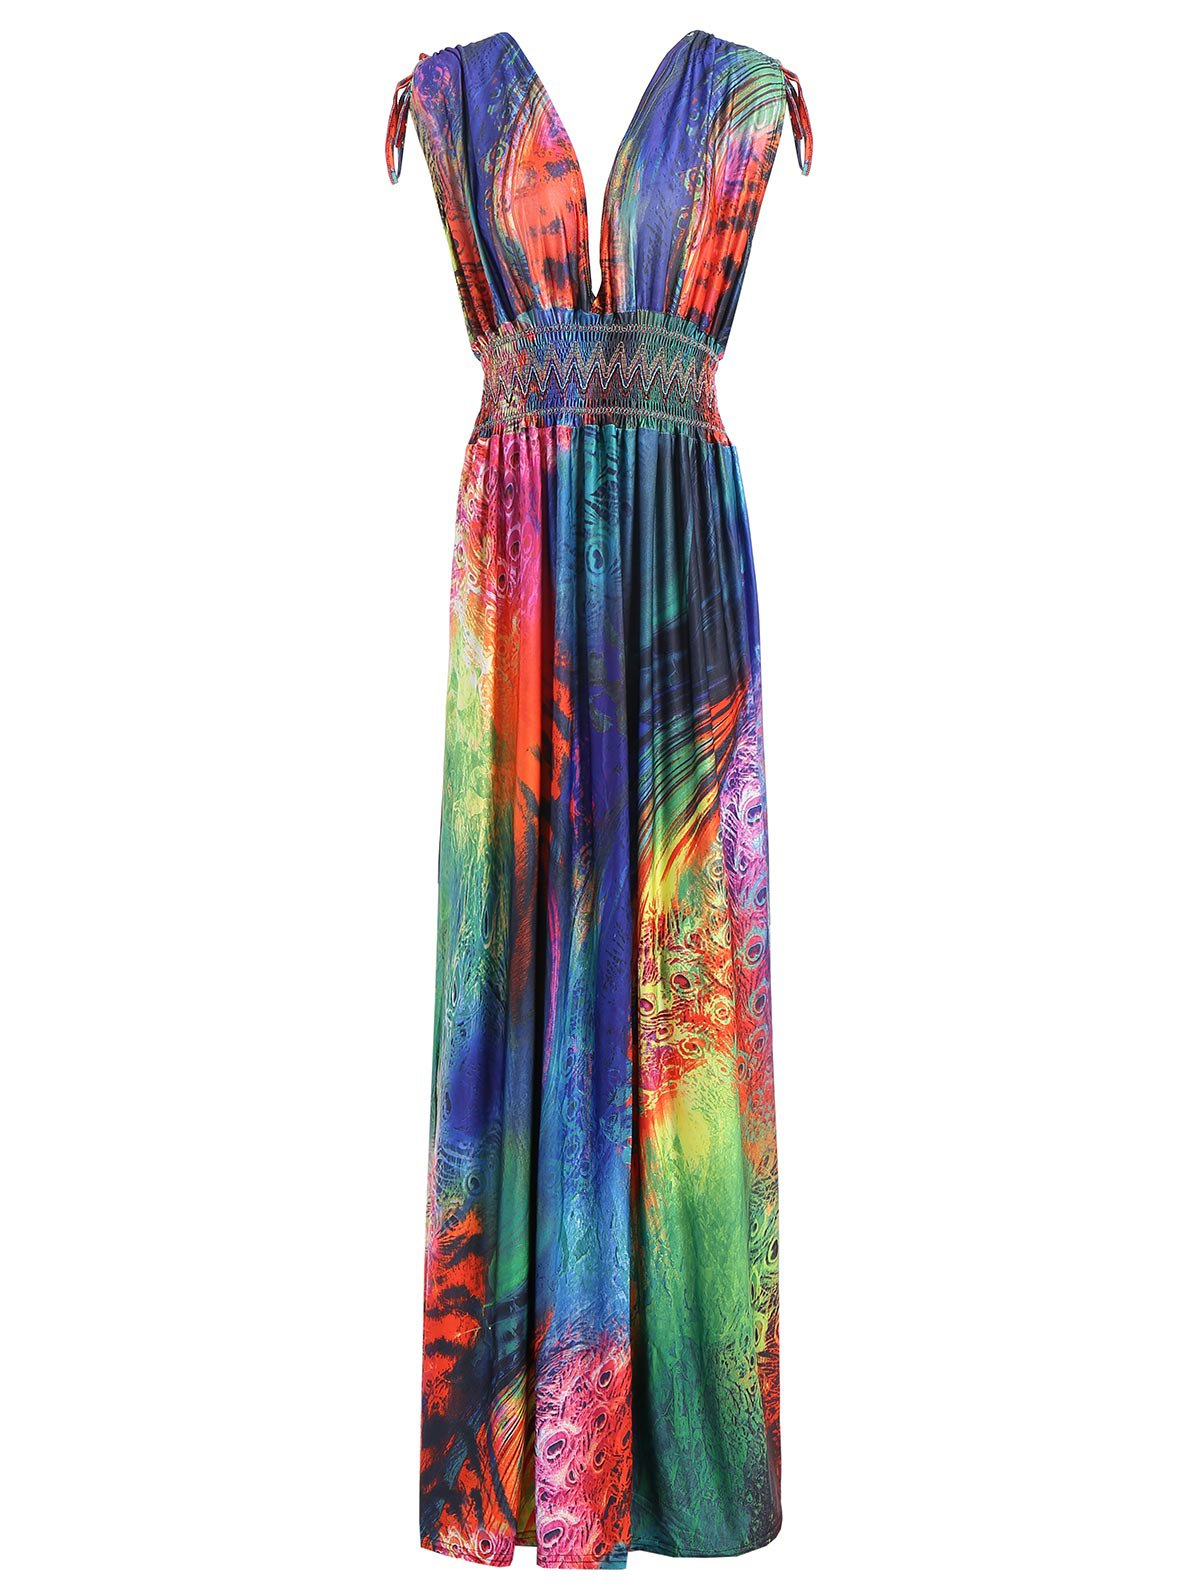 Plunging Neck Feather Print Sleeveless Maxi DressWOMEN<br><br>Size: 3XL; Color: COLORMIX; Style: Bohemian; Material: Spandex; Silhouette: Pleated; Dresses Length: Floor-Length; Neckline: Plunging Neck; Sleeve Length: Sleeveless; Pattern Type: Feather; With Belt: No; Season: Summer; Weight: 0.3800kg; Package Contents: 1 x Dress;